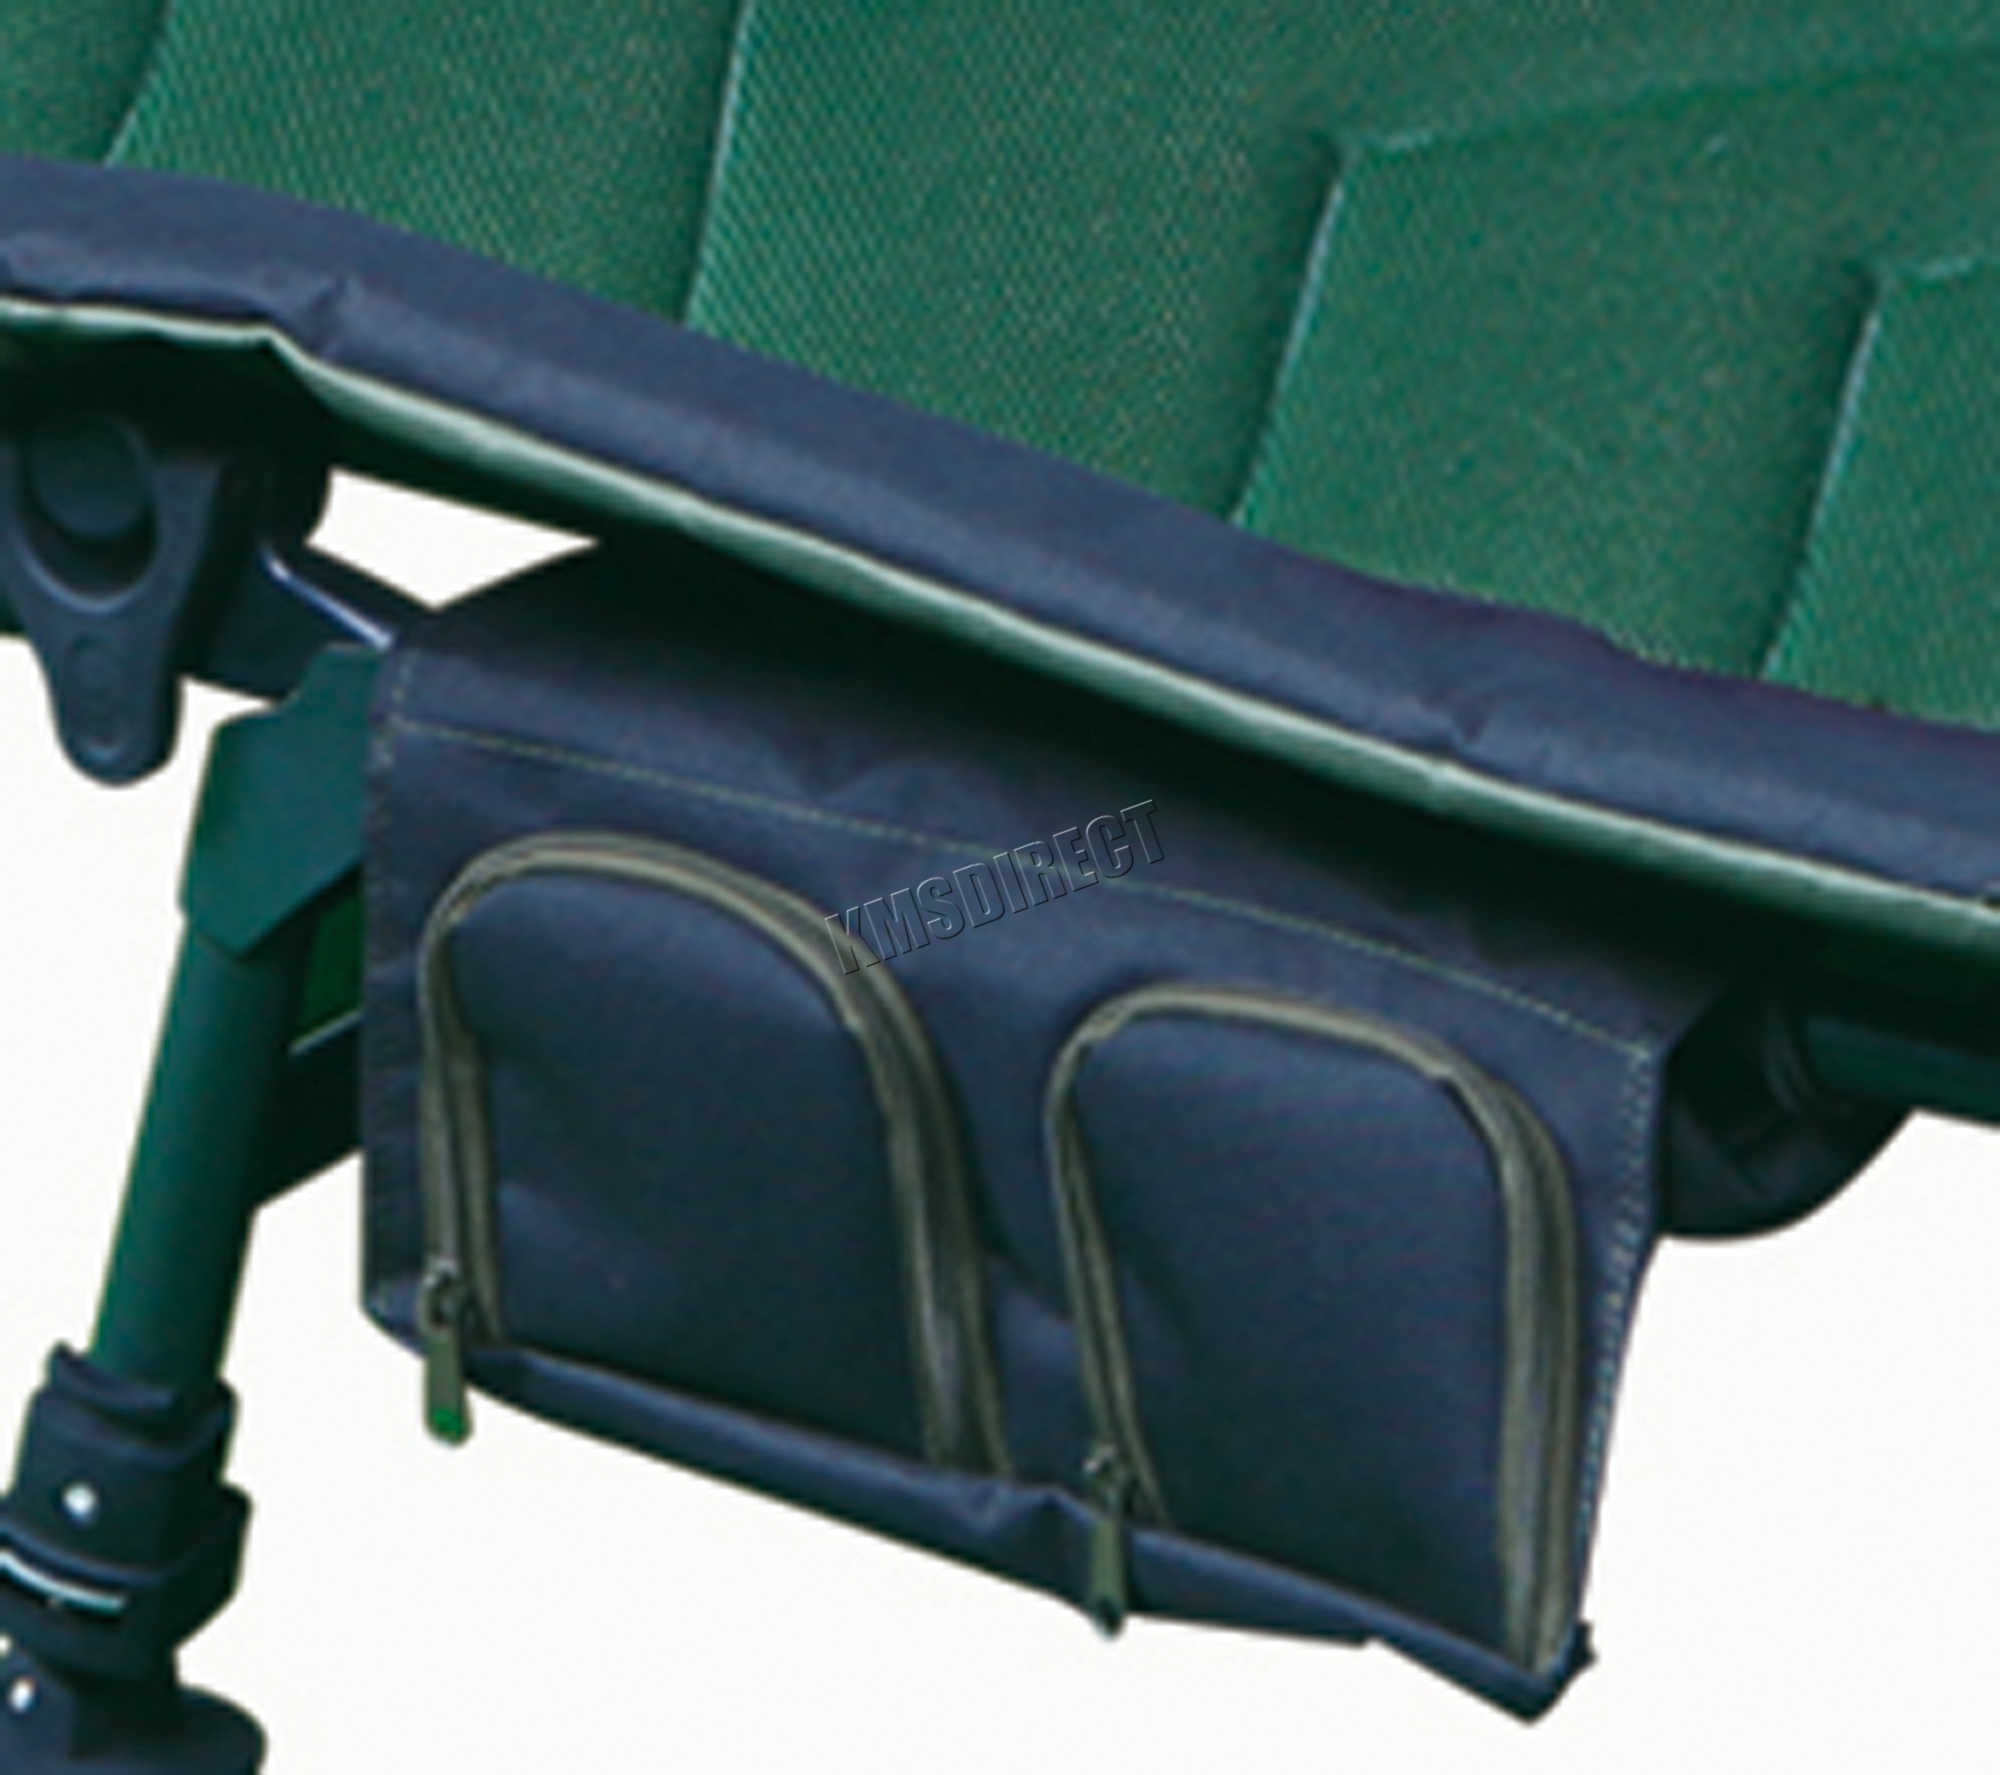 fishing chair bed reviews wedding cover hire wales camping bedchair 6 adjustable legs tool